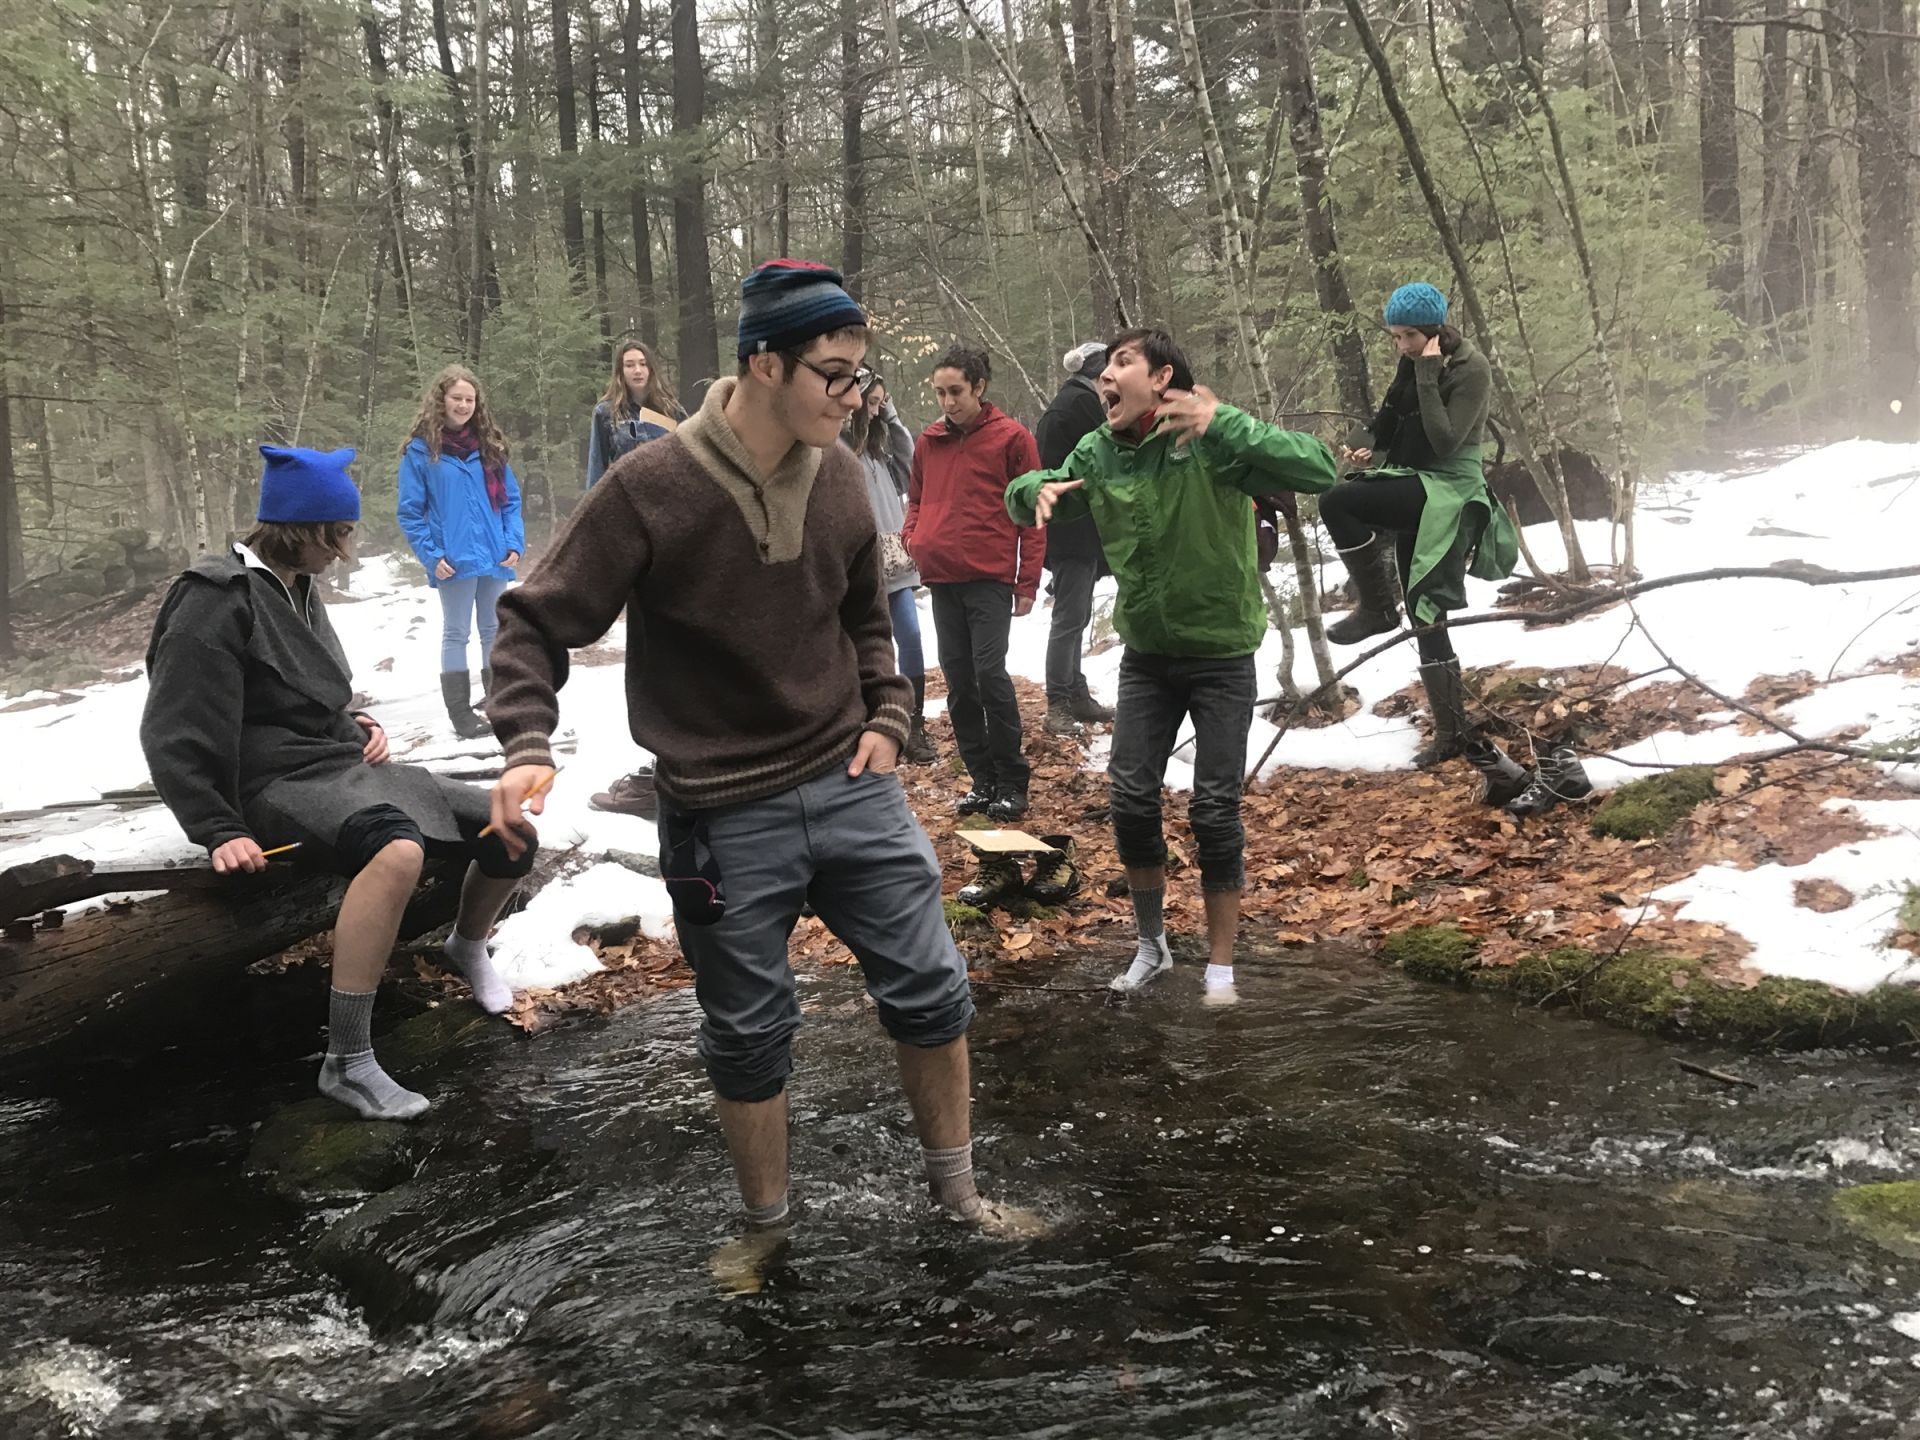 The afternoon Winter Ecology Class gets their feet wet testing the insulative values of wool socks vs. cotton socks.